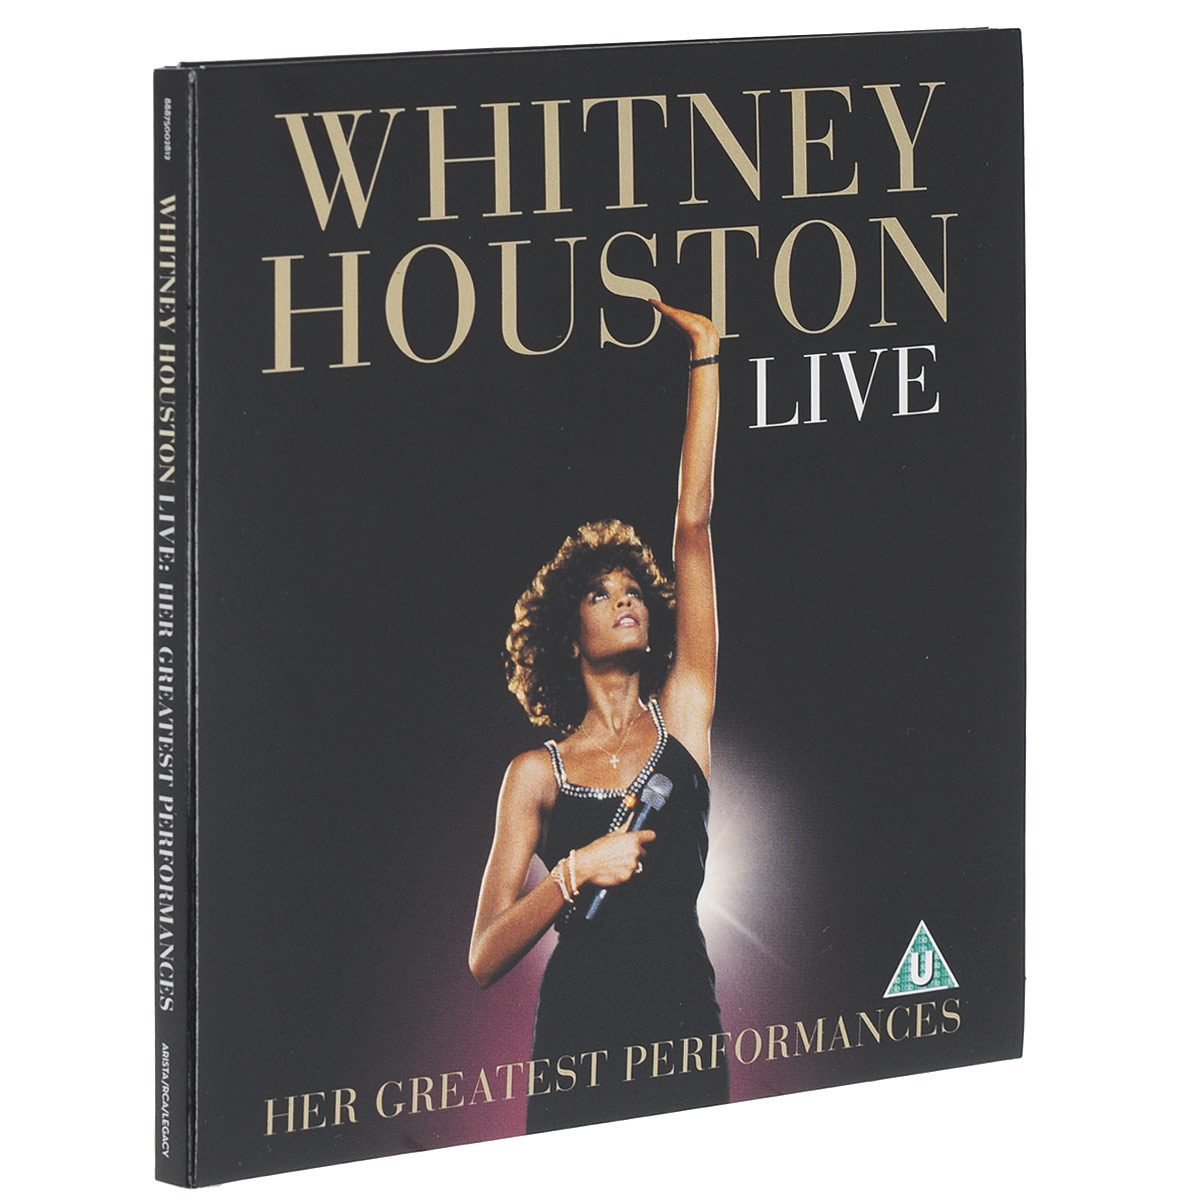 Уитни Хьюстон Whitney Houston. Live. Her Greatest Performances (CD + DVD) уитни хьюстон whitney houston live her greatest performances cd dvd